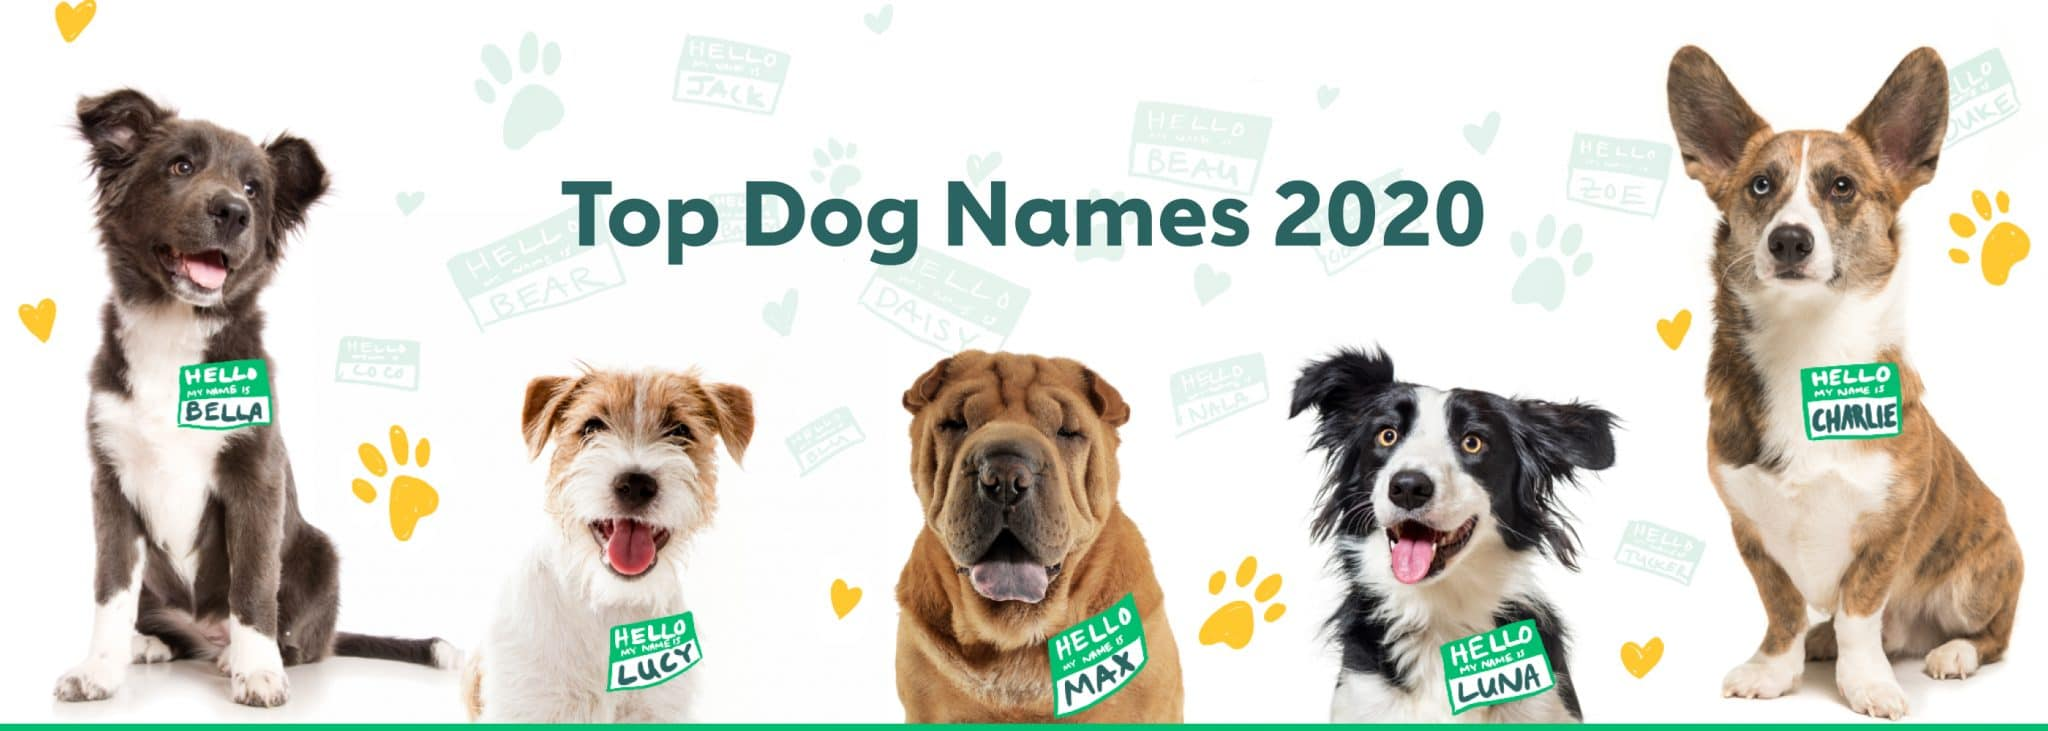 The most popular dog names of 2020 image